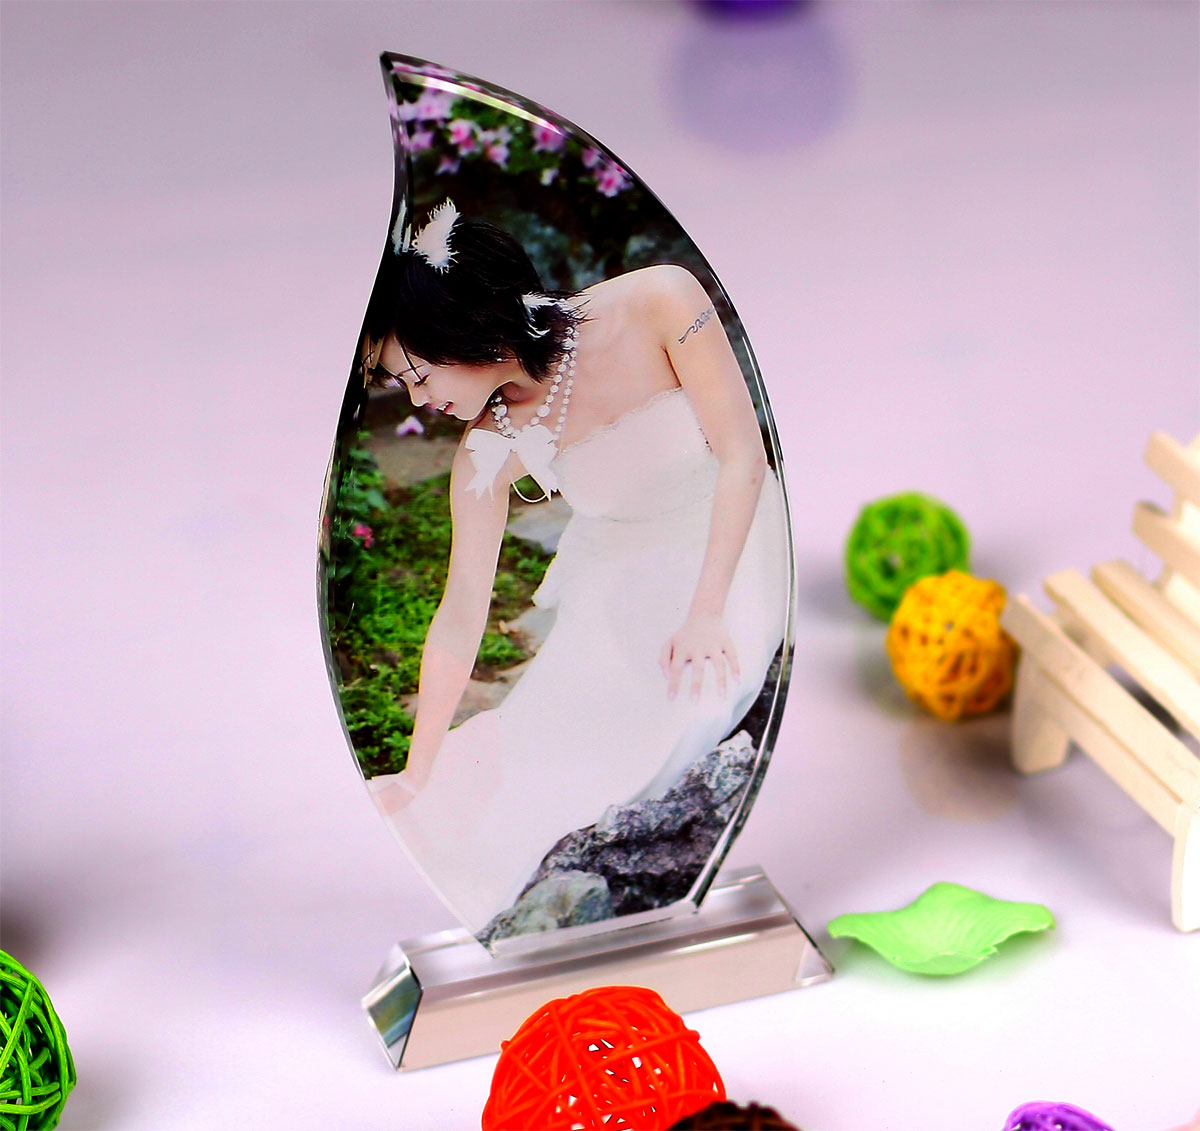 Crystal photo photo custom crystal leaf frame made diy personalized photo photo to send his girlfriend